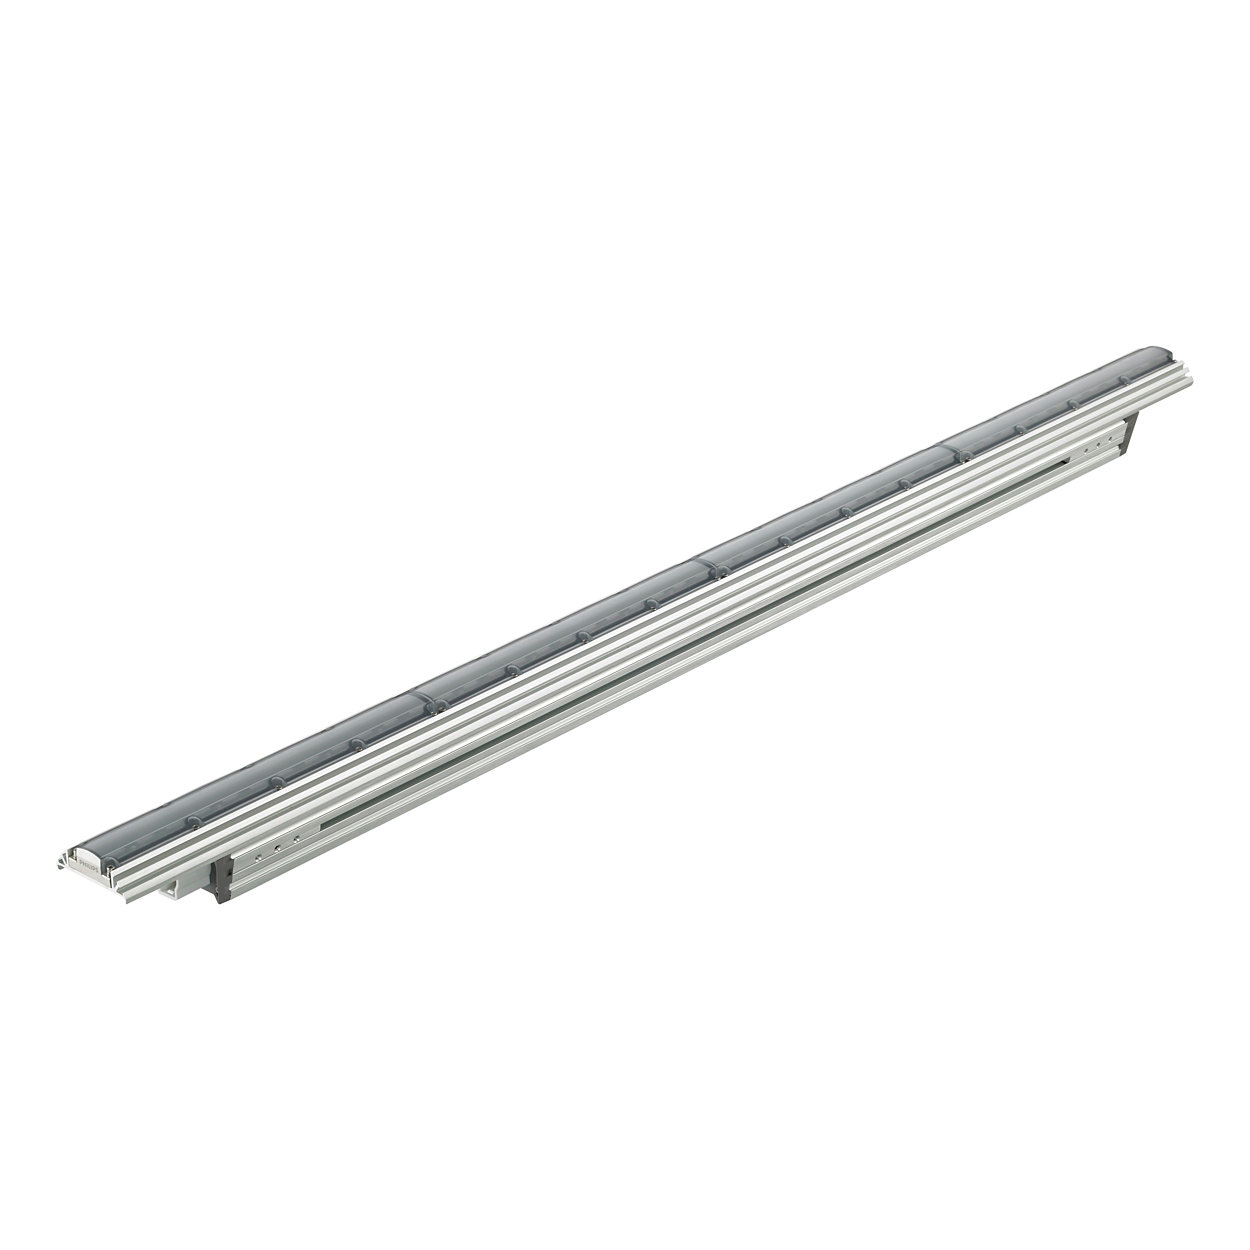 ColorGraze EC Powercore – Cost-effective linear exterior LED wall grazing luminaire with intelligent color light